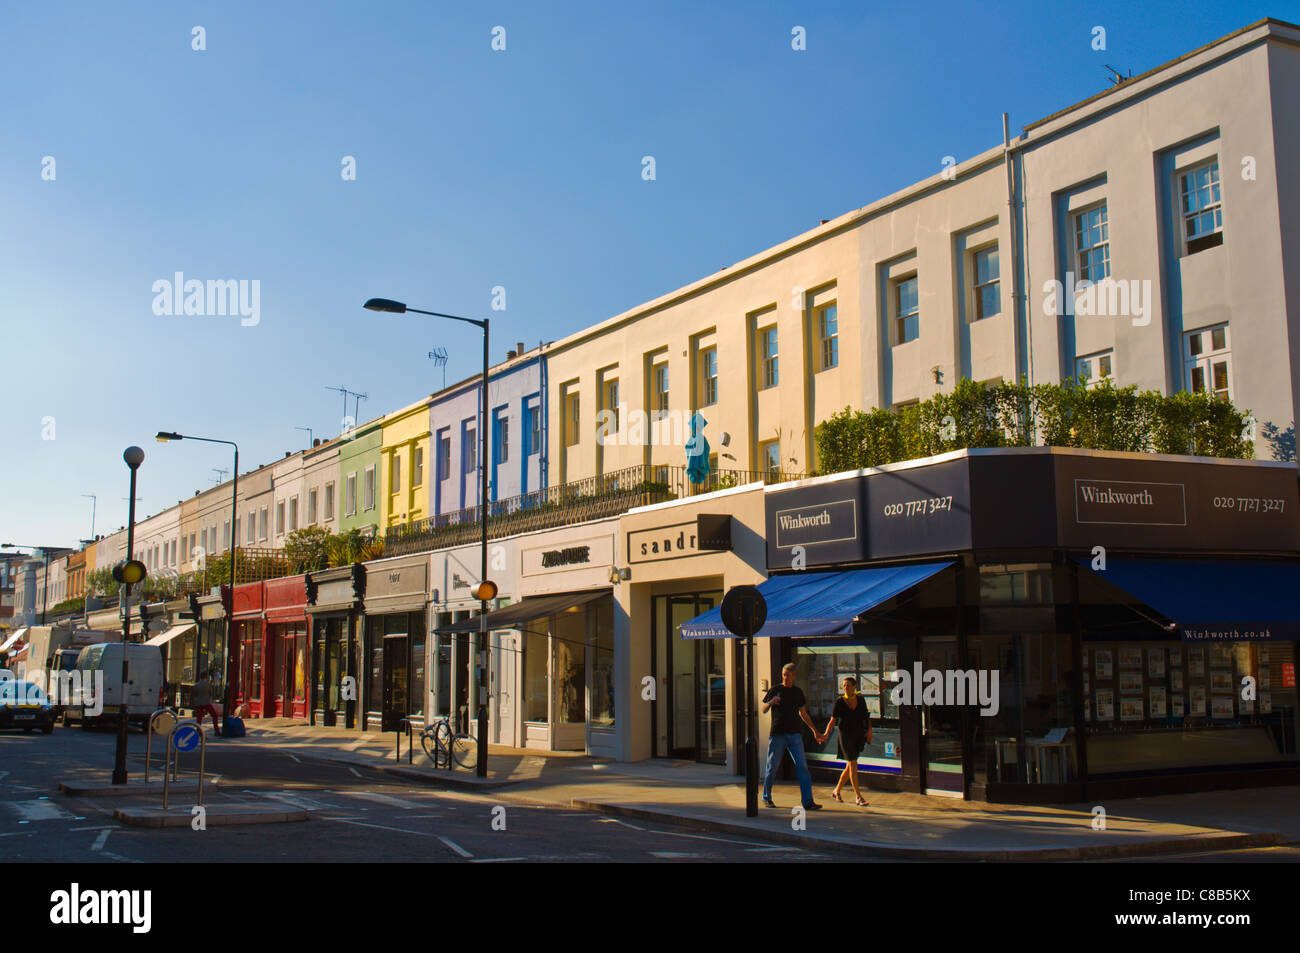 Westbourne Grove street Notting Hill district London England UK Europe - Stock Image